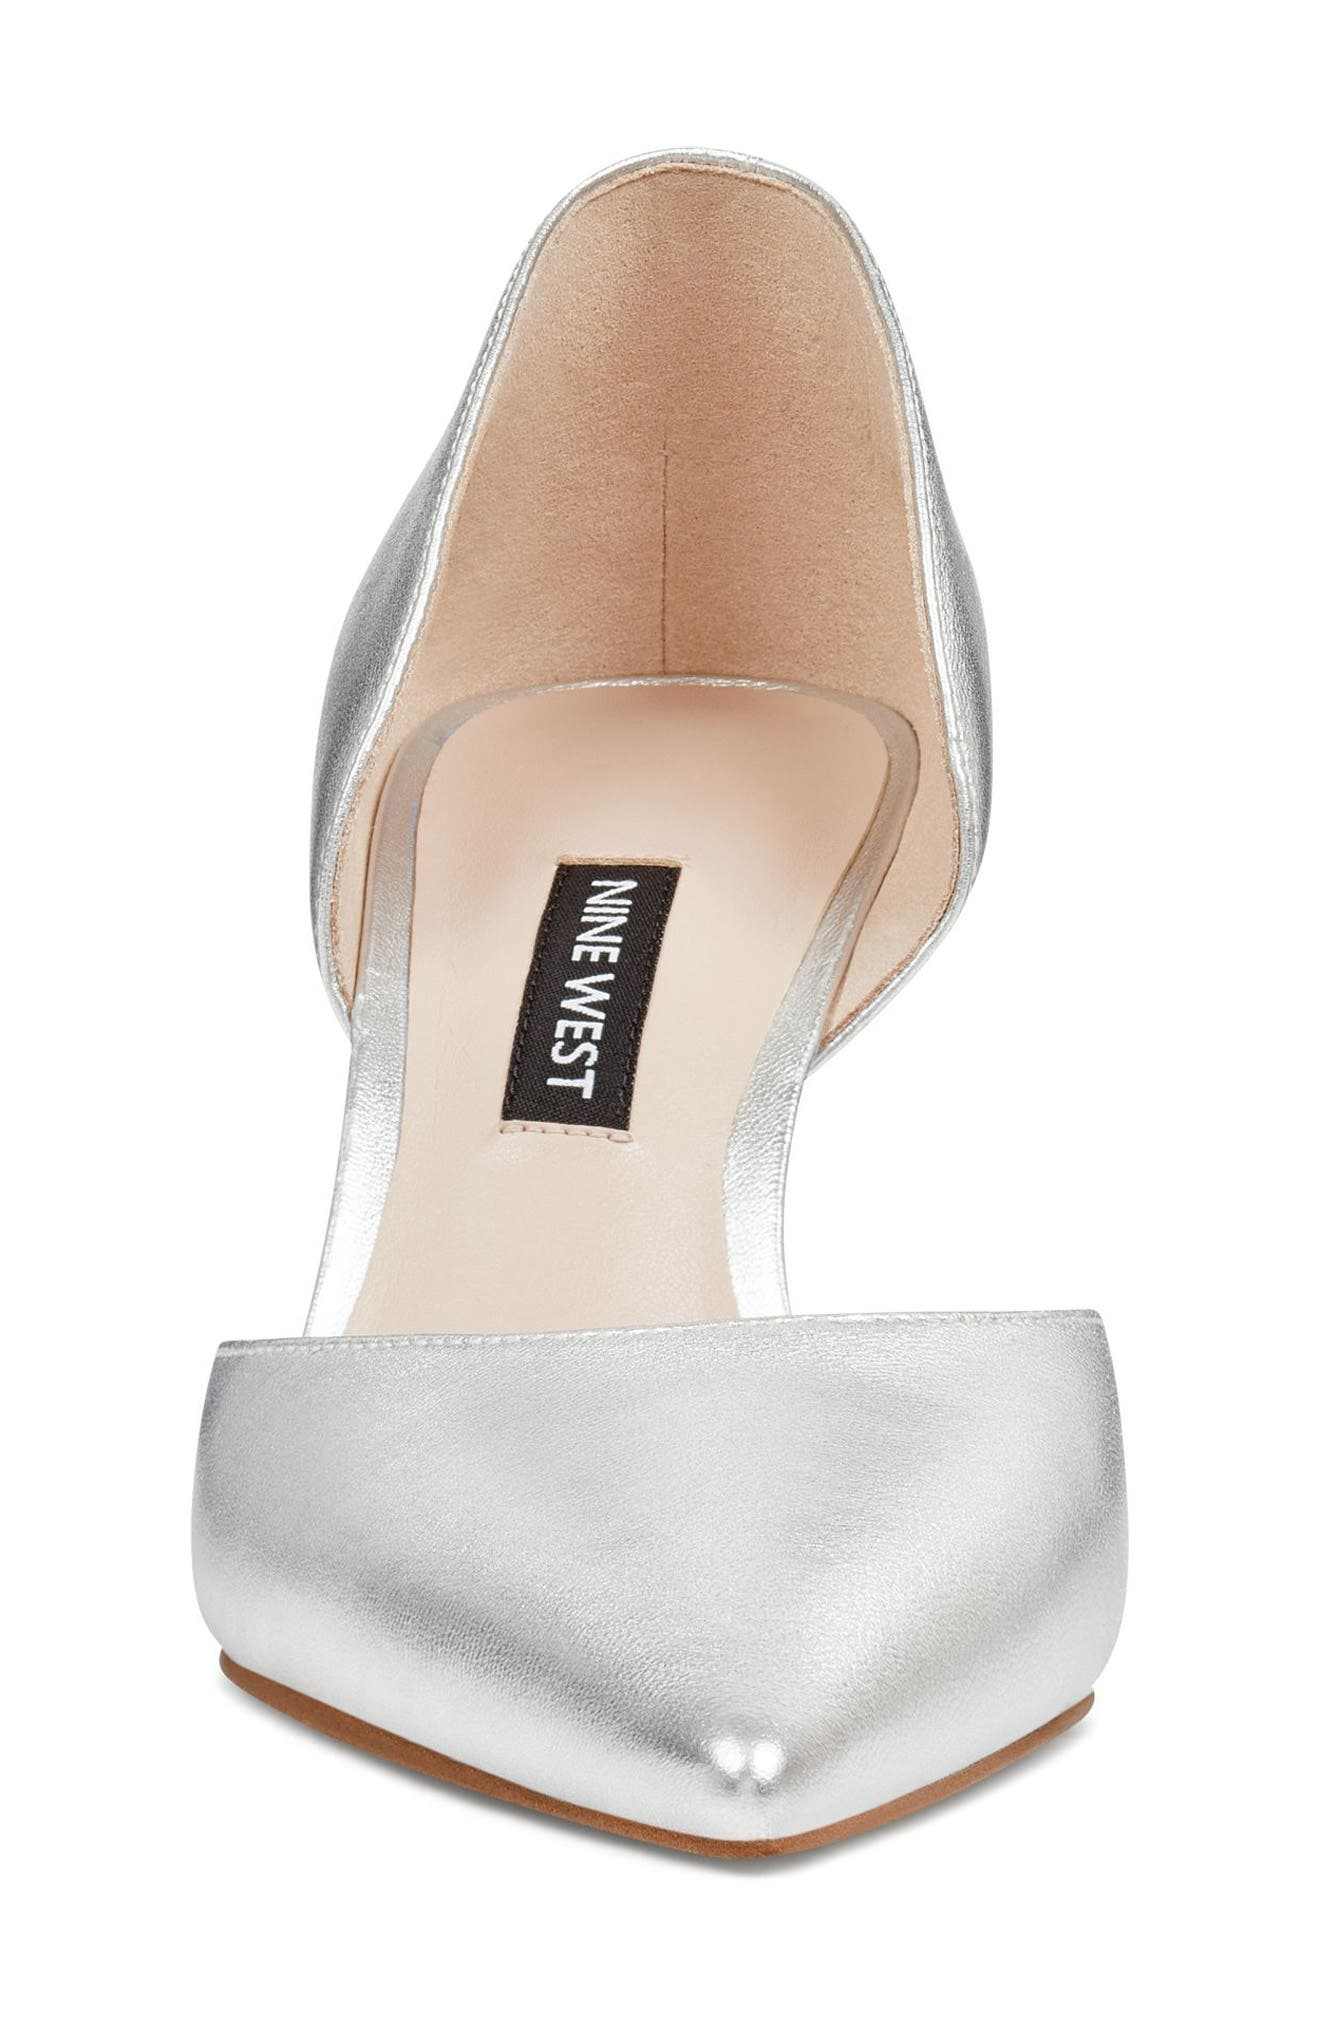 Mossiel Open Sided Pump,                             Alternate thumbnail 4, color,                             Silver